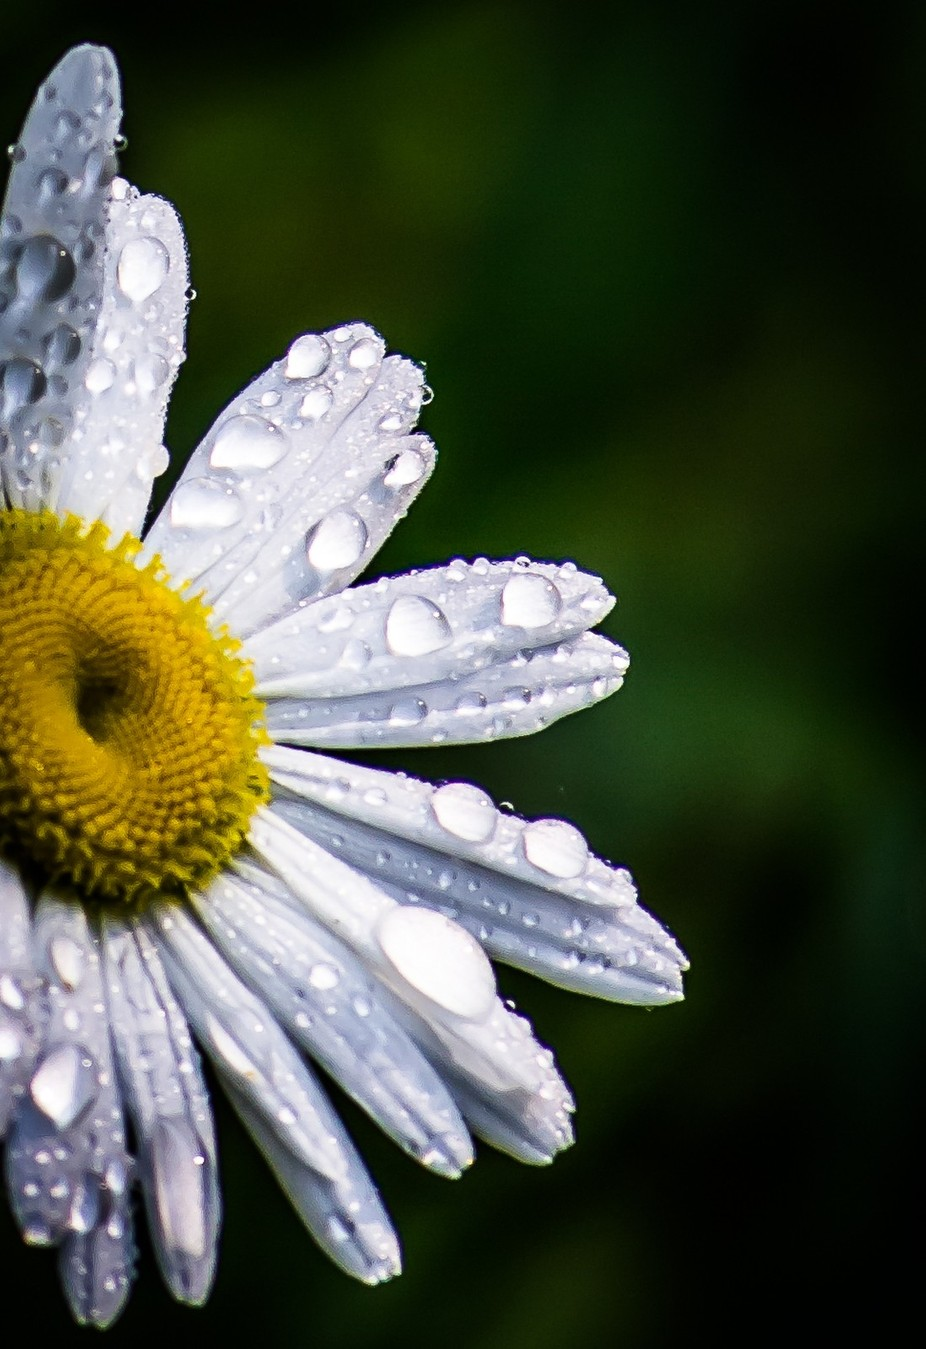 A part of my personal Daisy Series taken in my front yard in the Georgia Mountains.